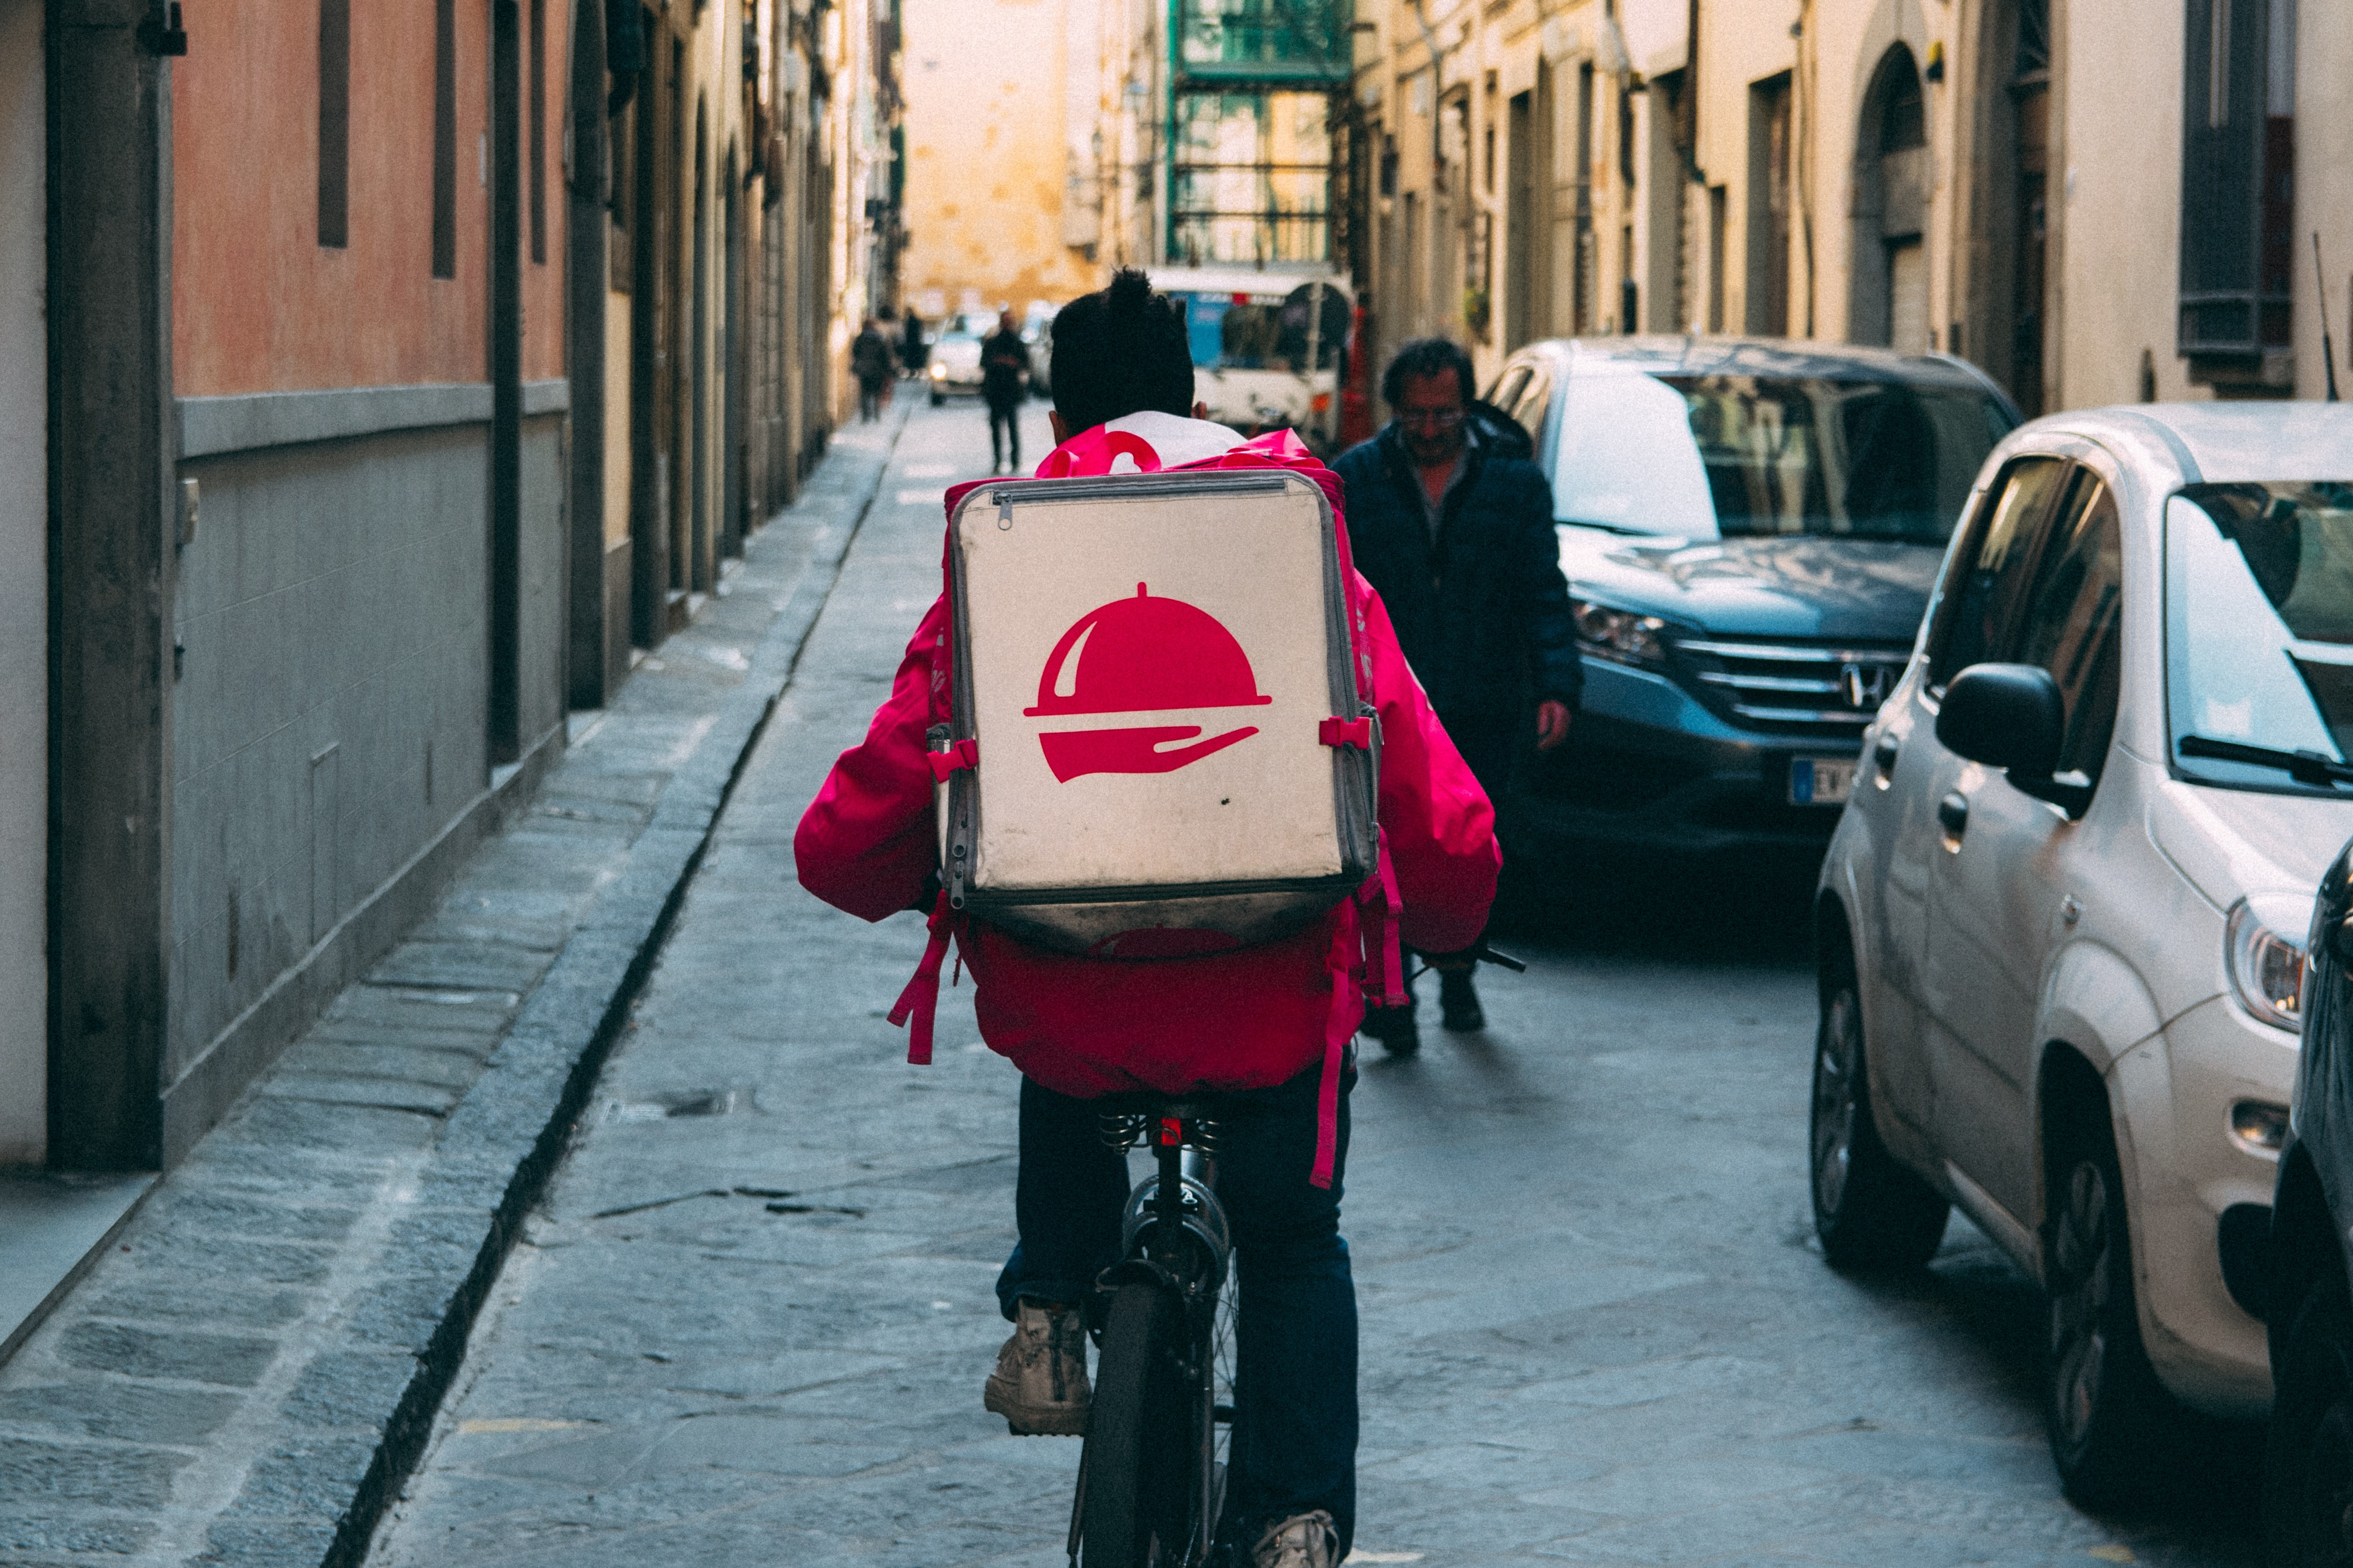 5 features for optimizing restaurant deliveries